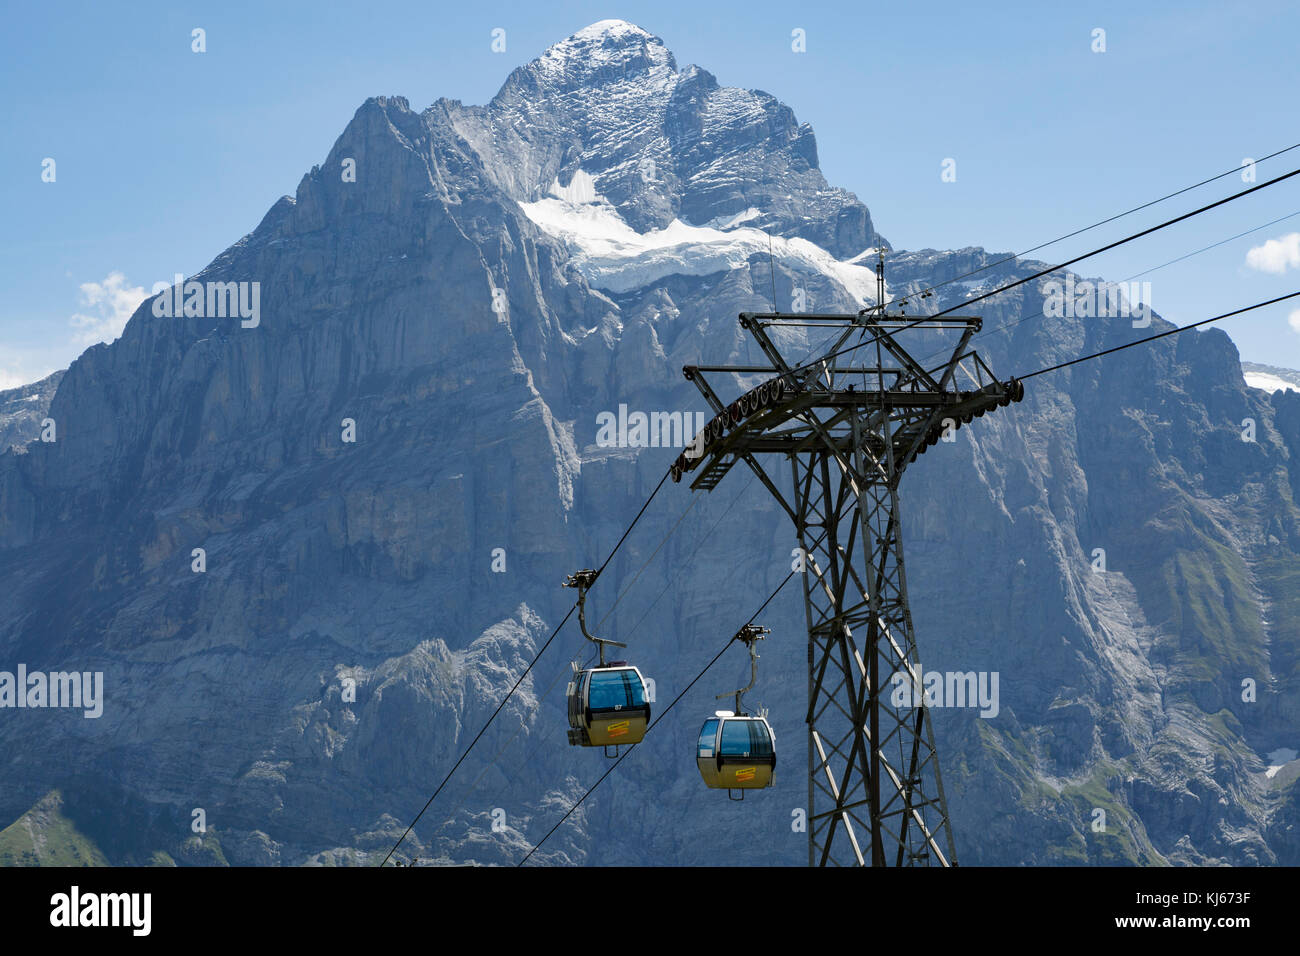 Wetterhorn and the Grindelwald-First cablecar, Switzerland Stock Photo